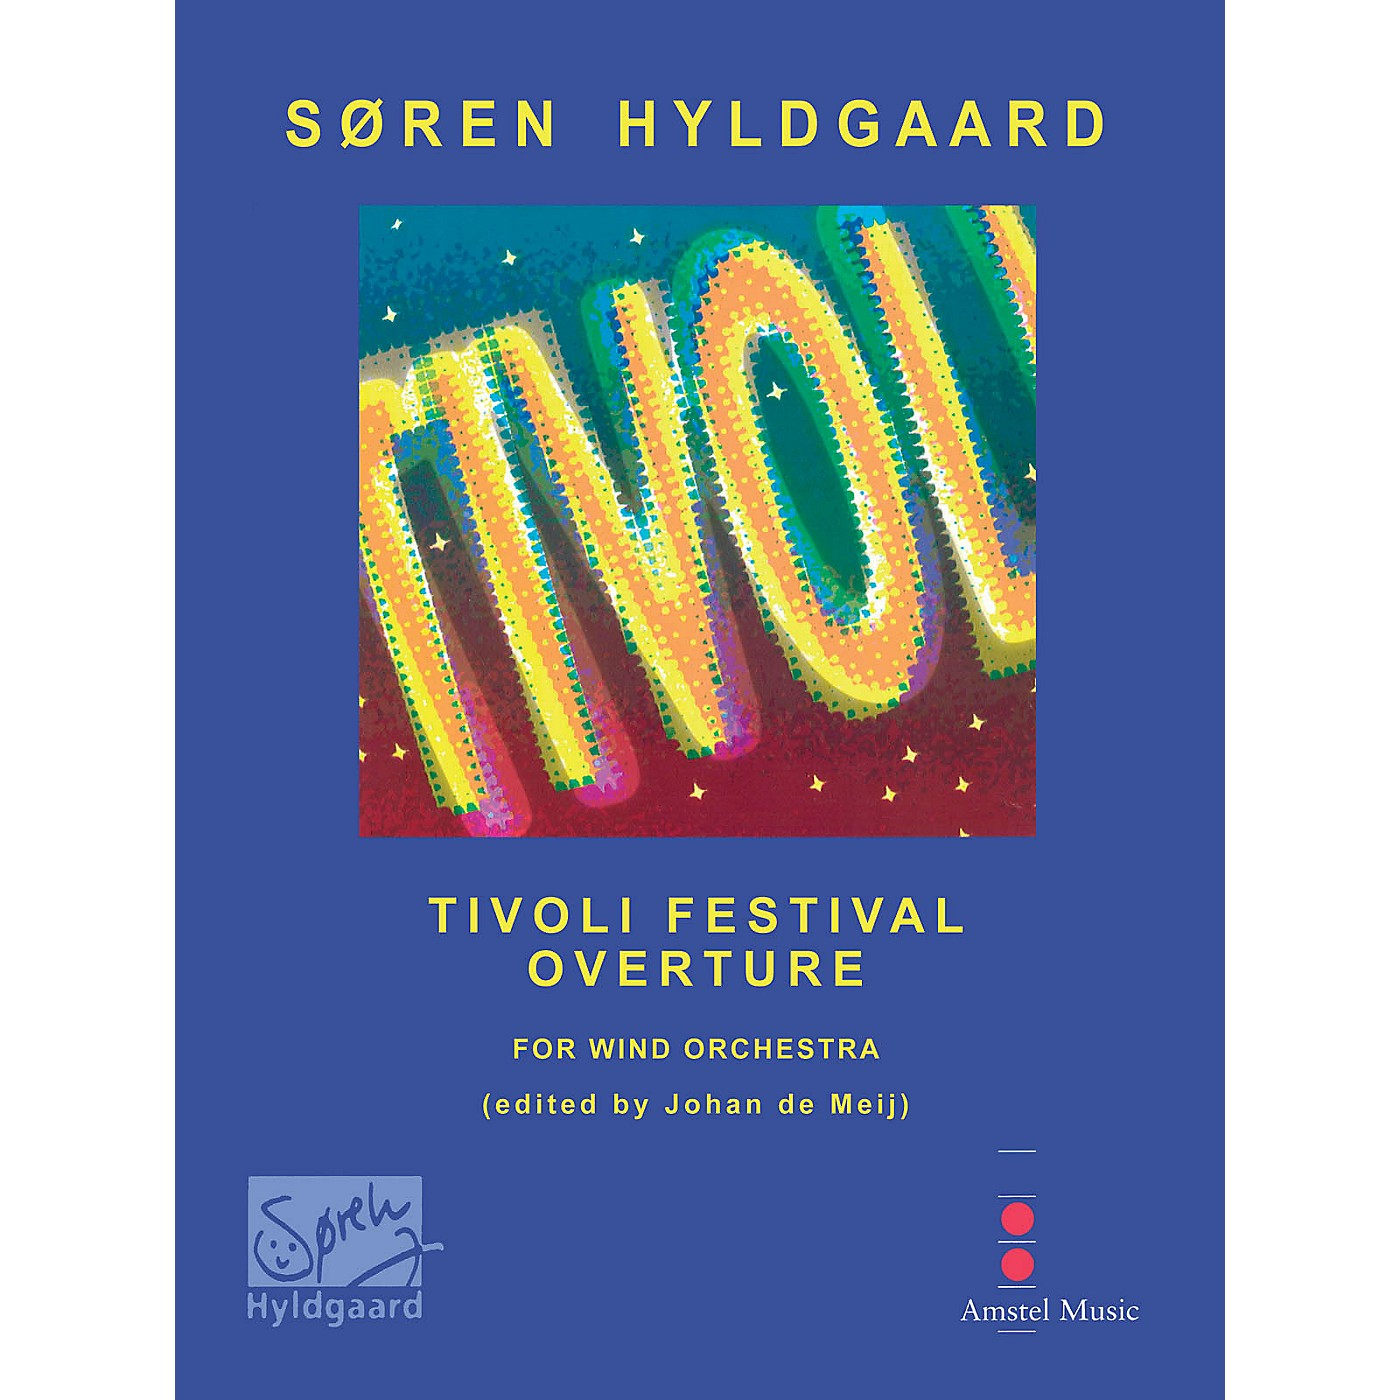 Amstel Music Tivoli Festival Overture (Score with CD) Concert Band Level 3-4 Composed by Soren Hyldgaard thumbnail